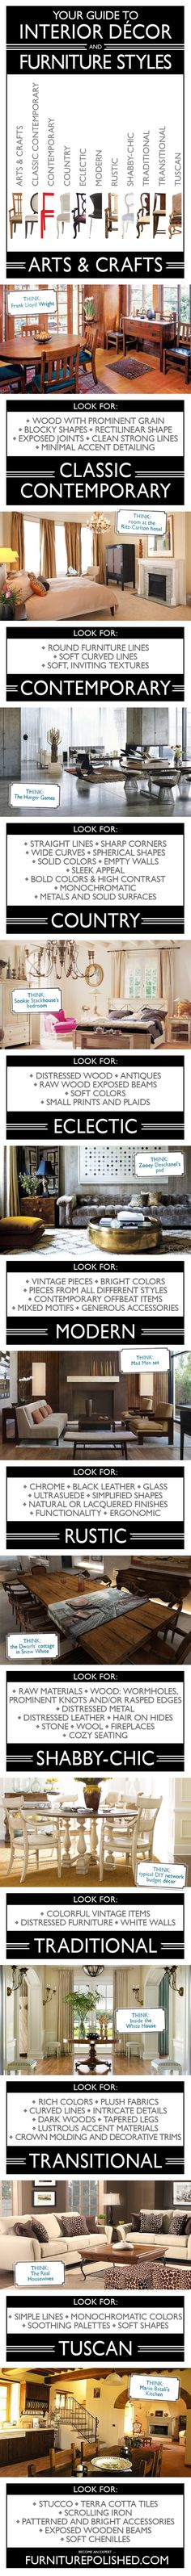 Interior Décor and Furniture Styles – Explained infographic